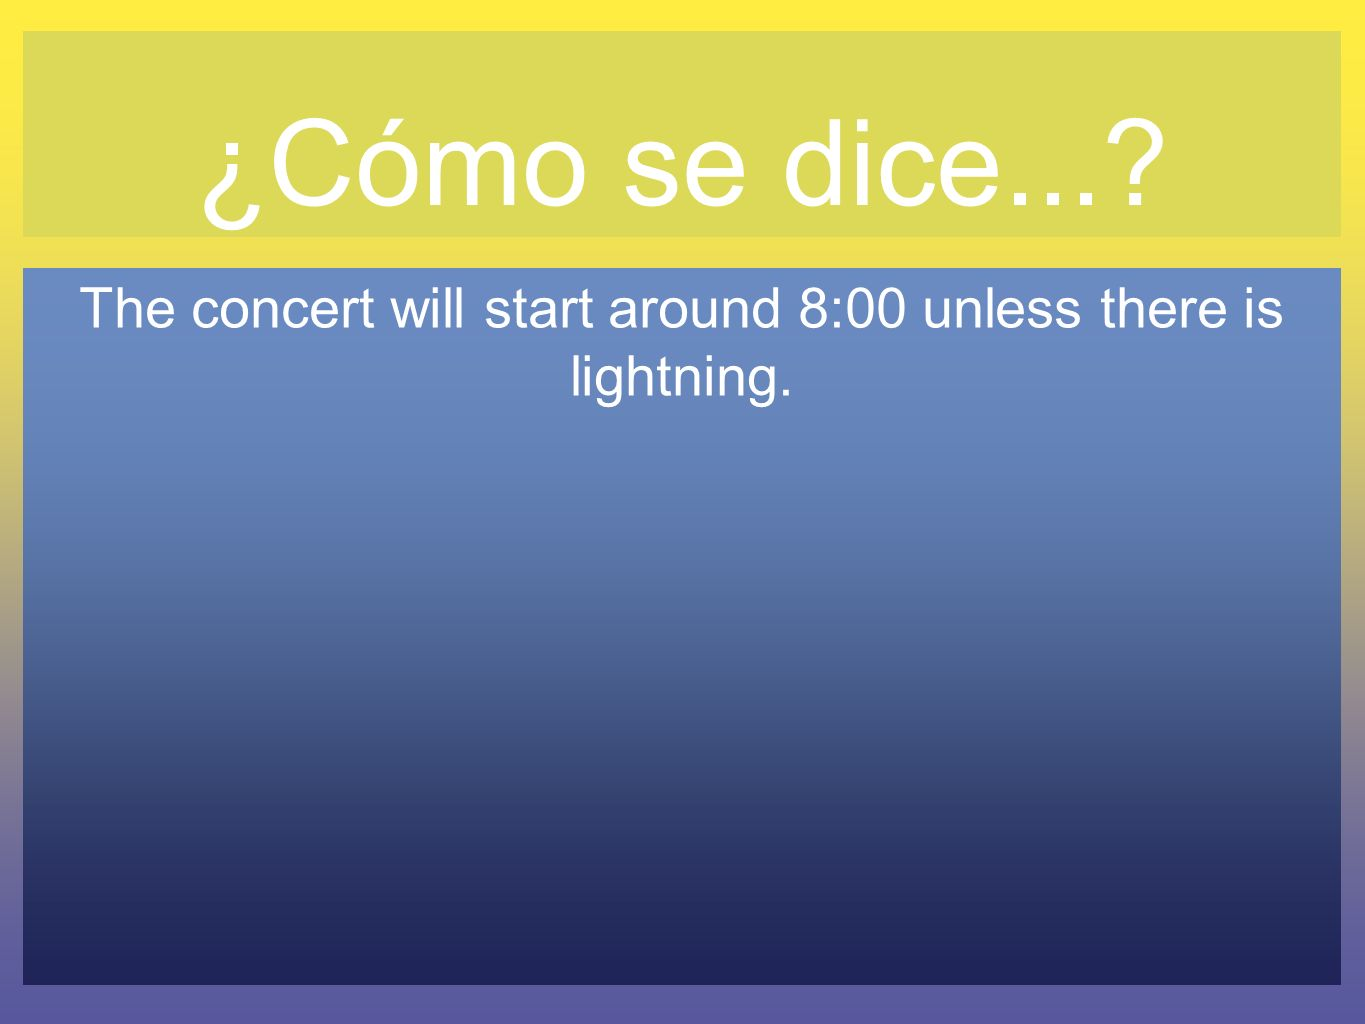 The concert will start around 8:00 unless there is lightning.